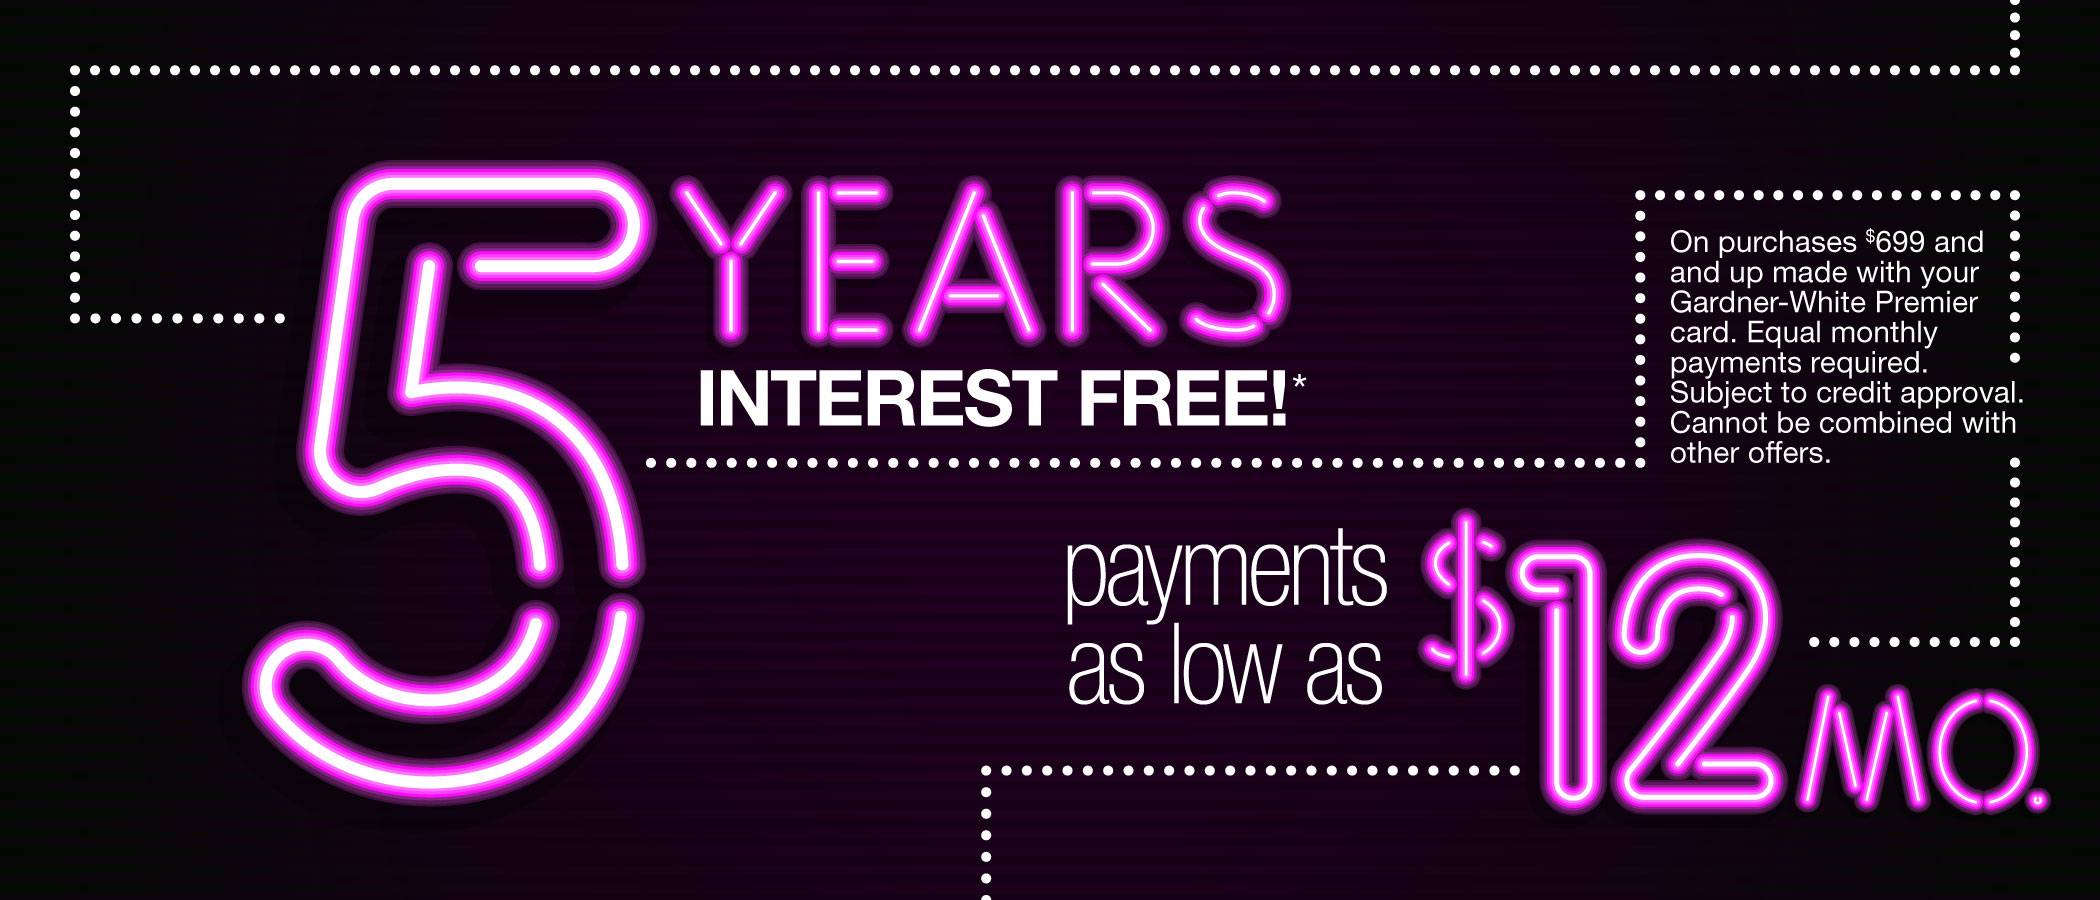 5 Years Interest-Free: Apply Now